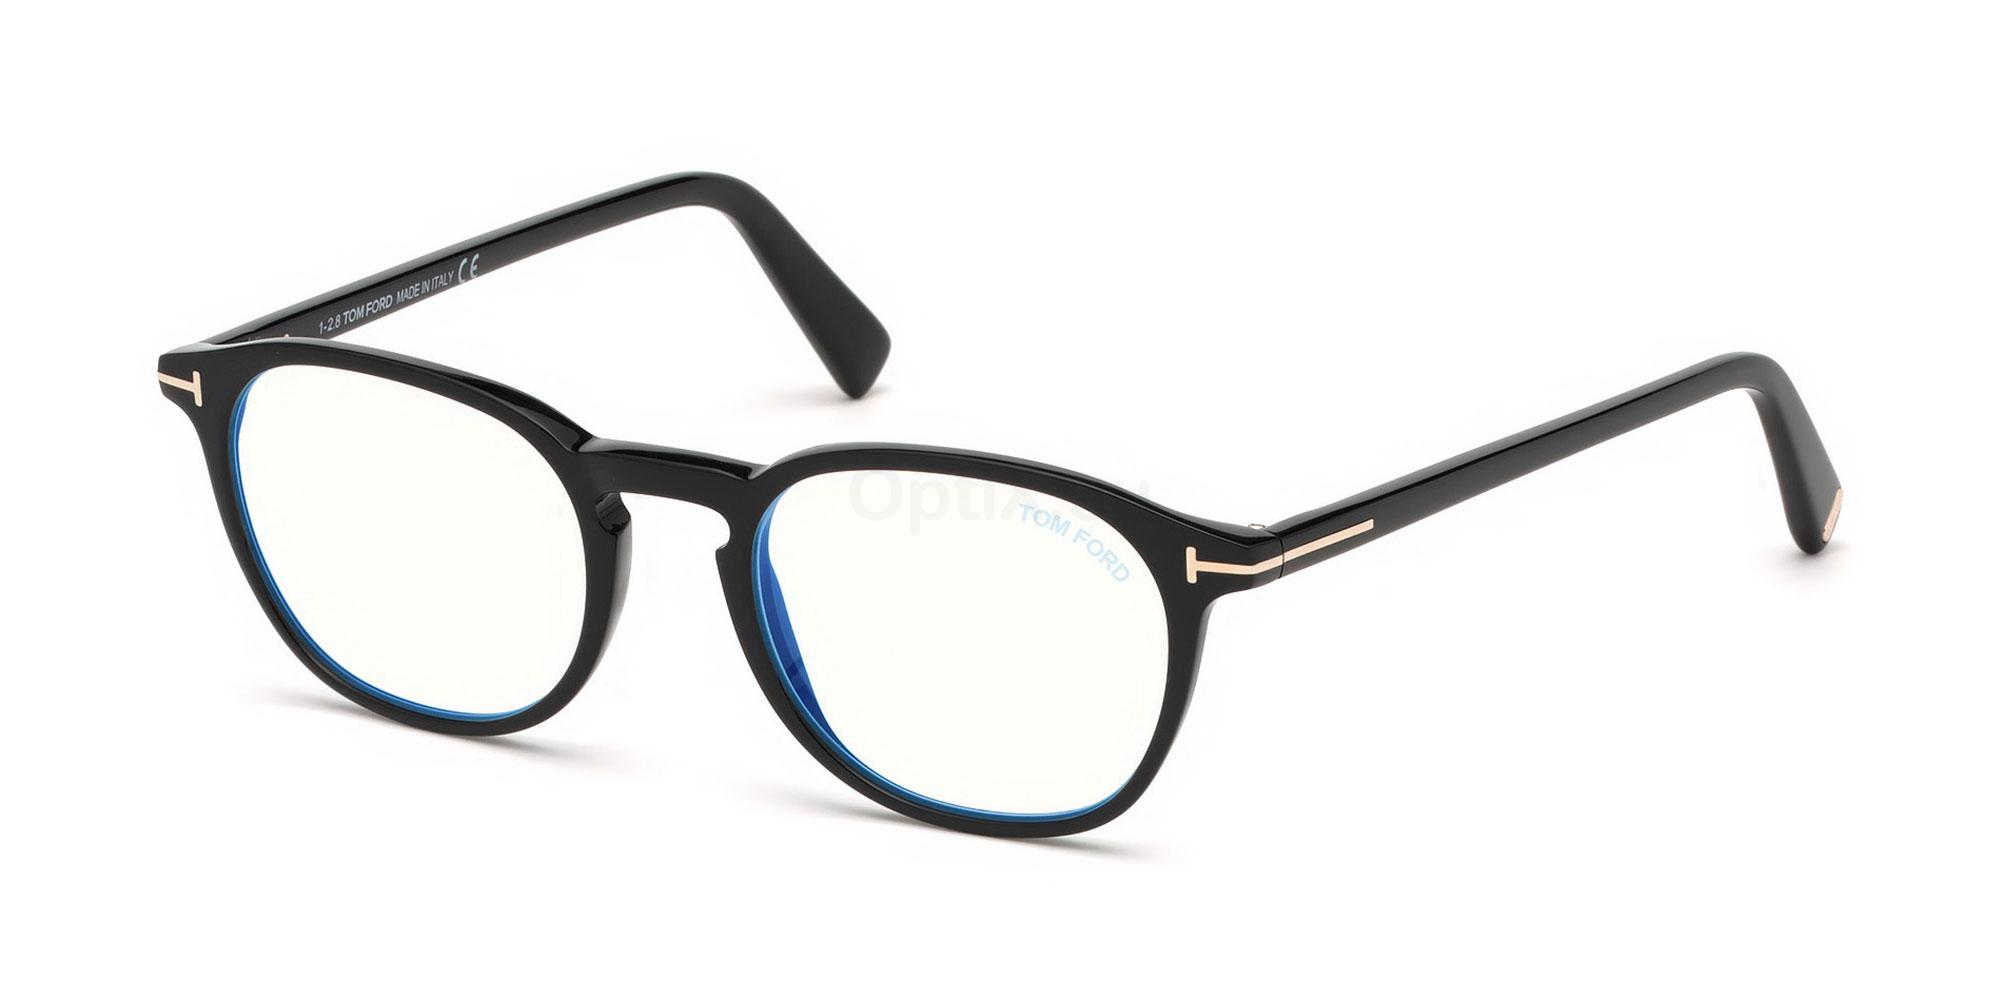 001 FT5583-B Glasses, Tom Ford